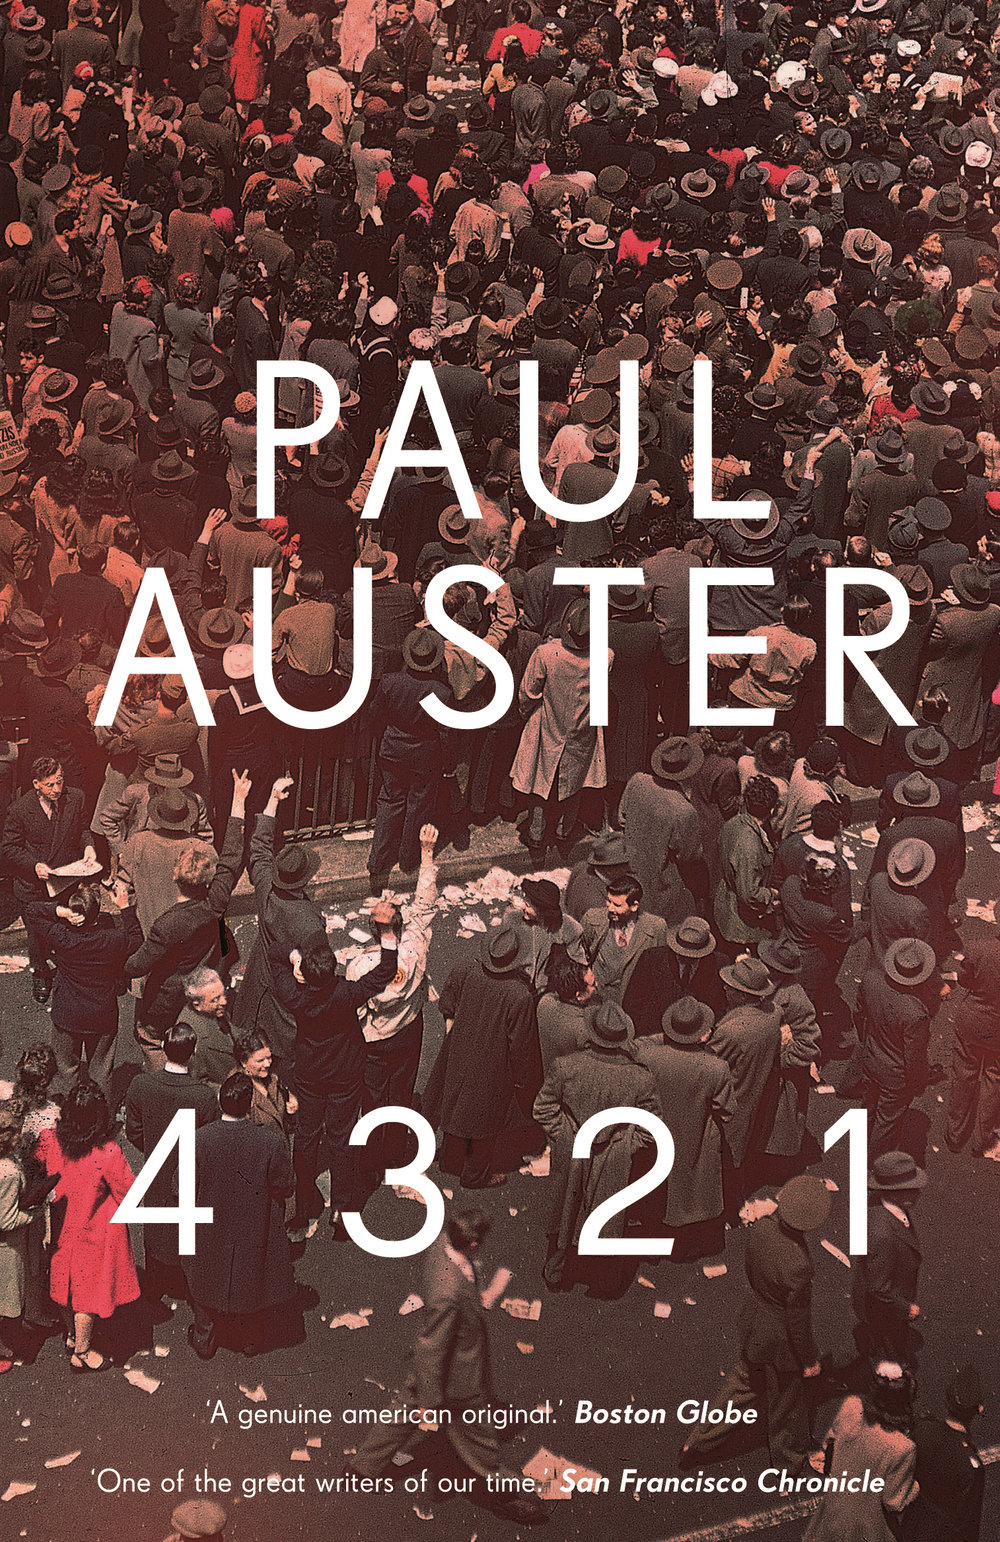 4 3 2 1 by paul auster - On March 3rd, 1947, Archibald Isaac Ferguson, the only child of Rose and Stanley Ferguson, is born. From that single beginning, Ferguson's life will take four simultaneous paths. Four Fergusons will go on to lead four parallel and entirely different lives. Family fortunes diverge. Loves and friendships and passions contrast. Each version of Ferguson's story rushes across the fractured terrain of mid-twentieth century America, in this sweeping story of birthright and possibility, of love and the fullness of life itself.